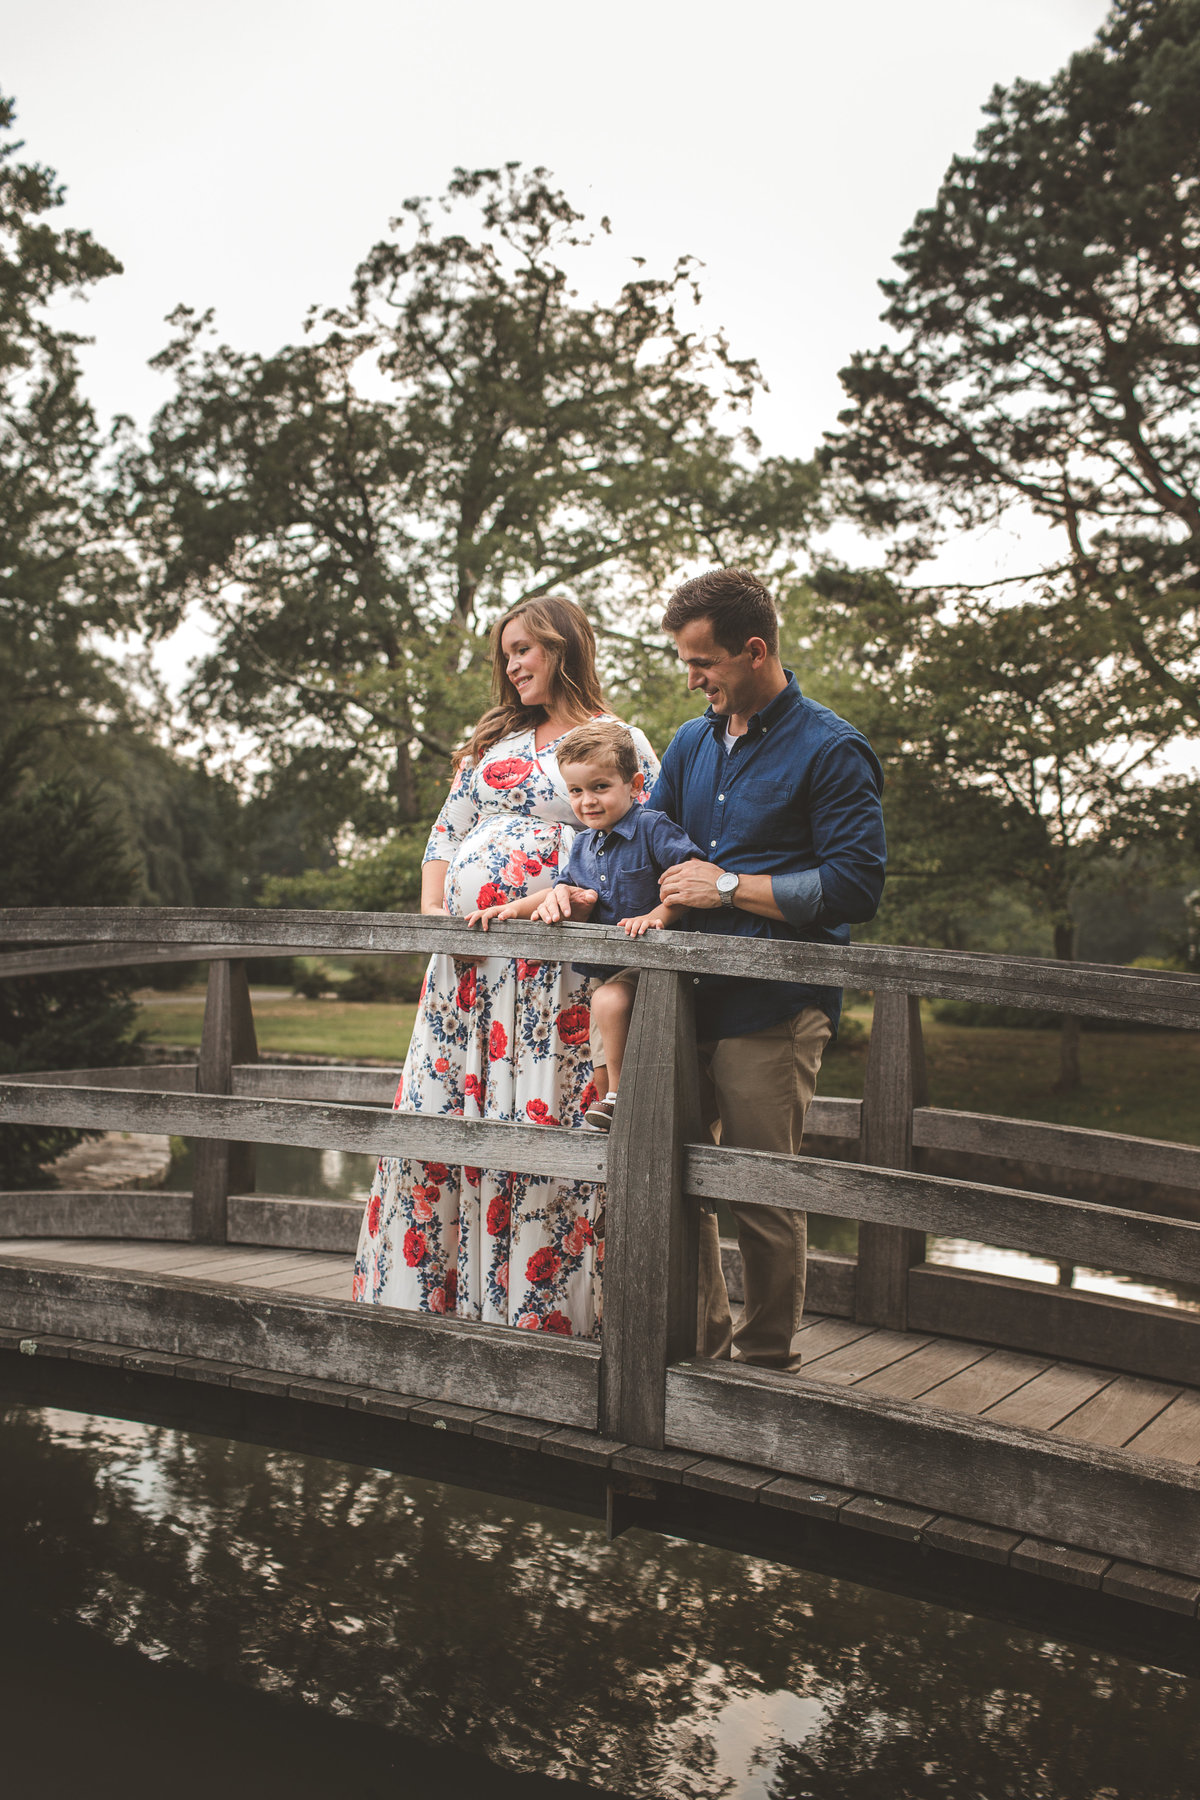 Providence_Rhode_Island_Roger_Williams_Park_maternity_family_session_About_Time_Photography_photo_1